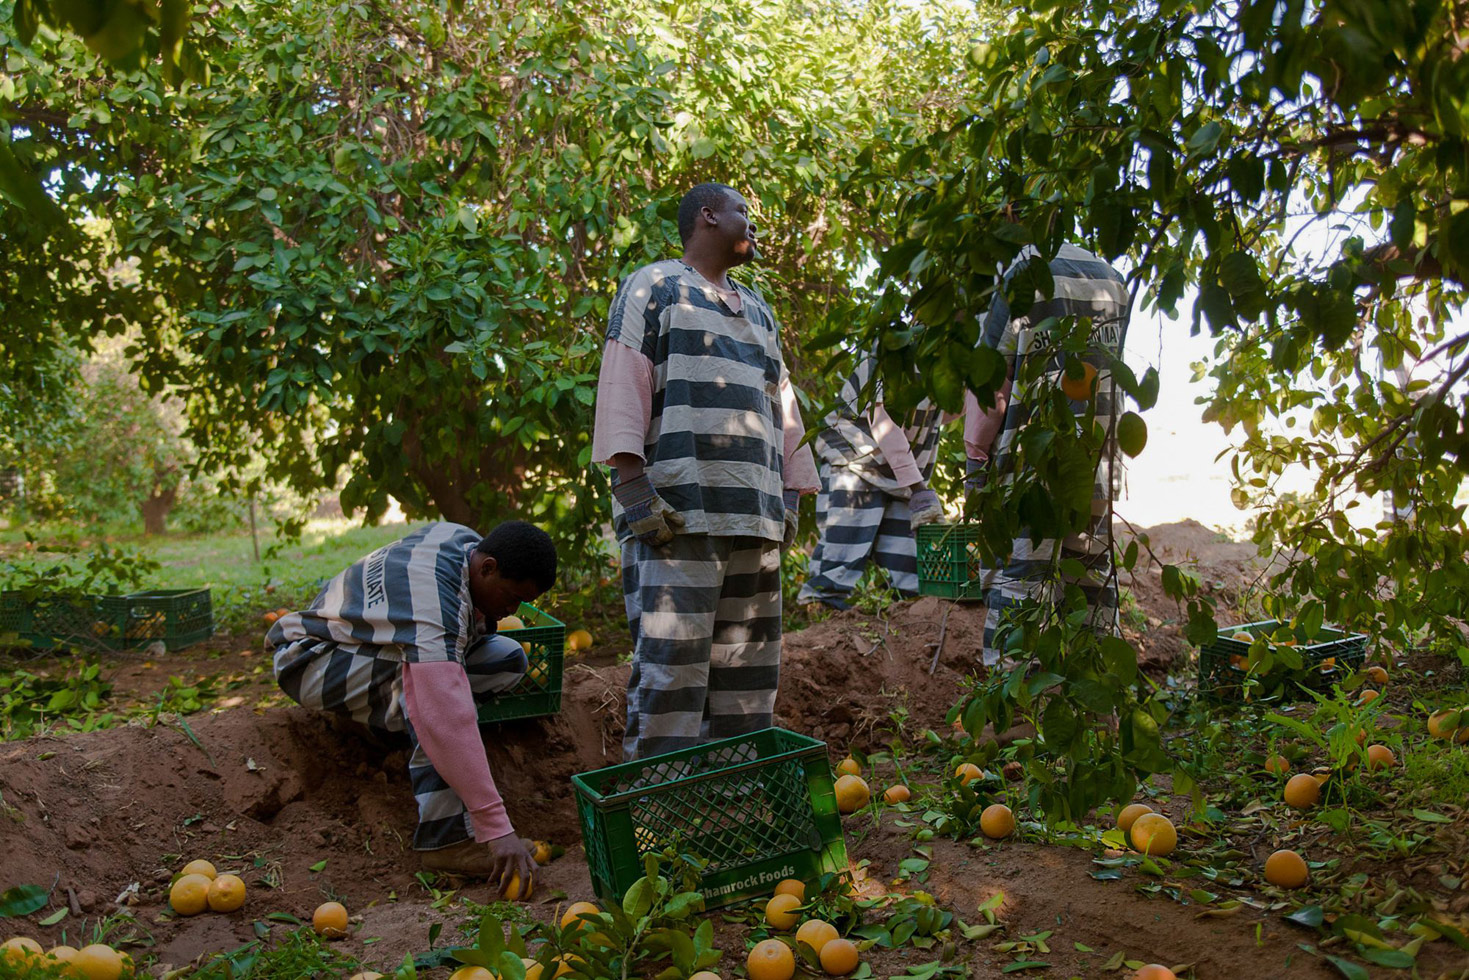 Inmates pick and gather five tons of grapefruit on a private farm. The farm sells the grapefruit back to Estrella Jail to feed prisoners.